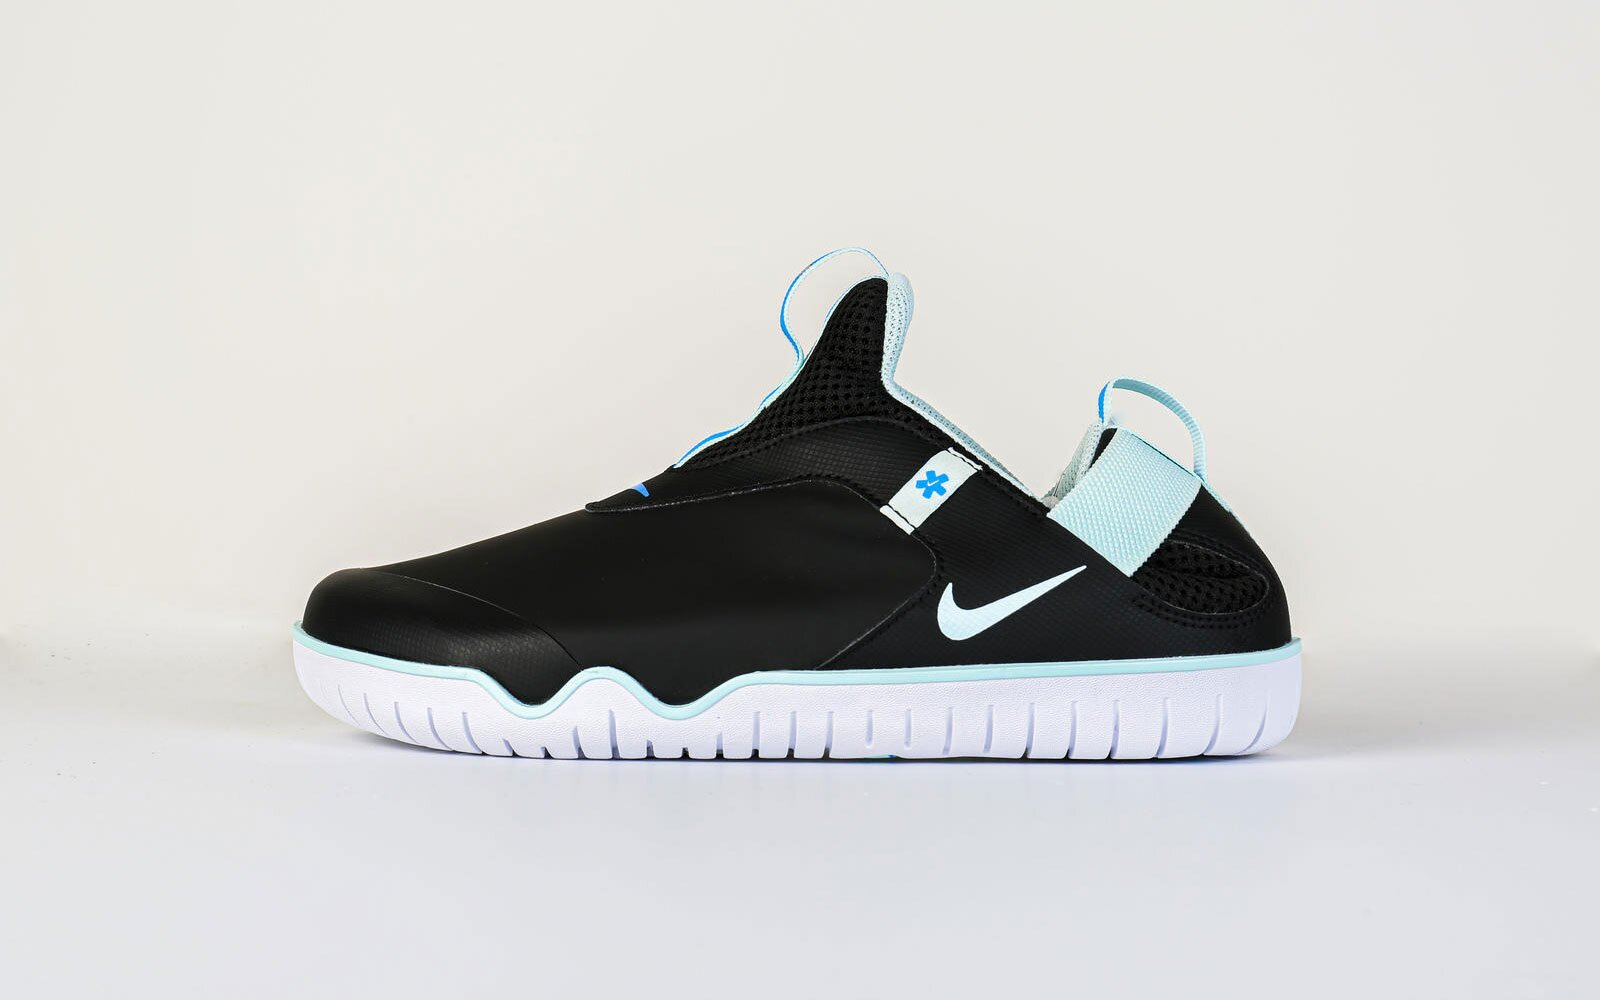 es suficiente Desmañado Orbita  Nike's New Comfy Shoe Is Made for Medical Workers Who Stand All Day    Travel + Leisure